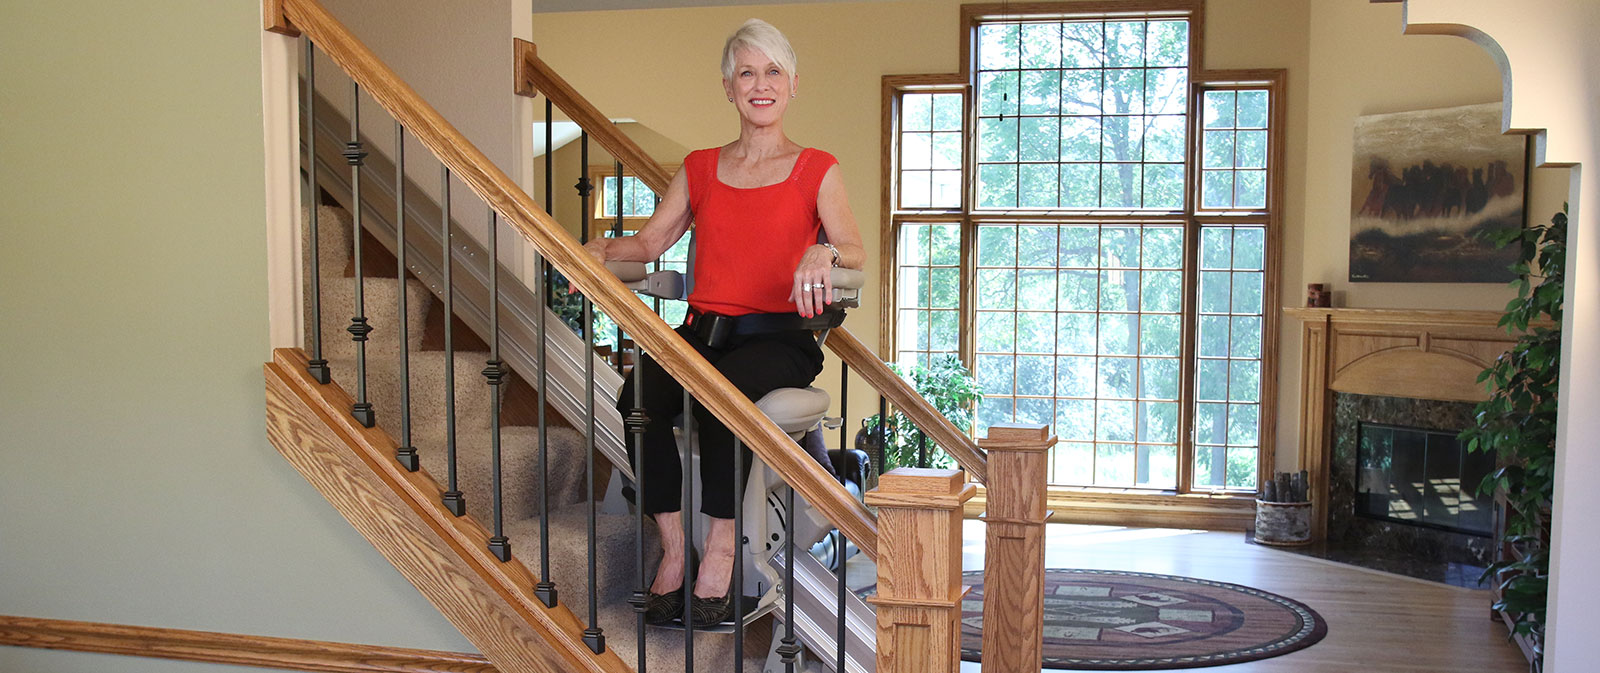 Should I Install A Stair Lift To Help My Aging Parent?